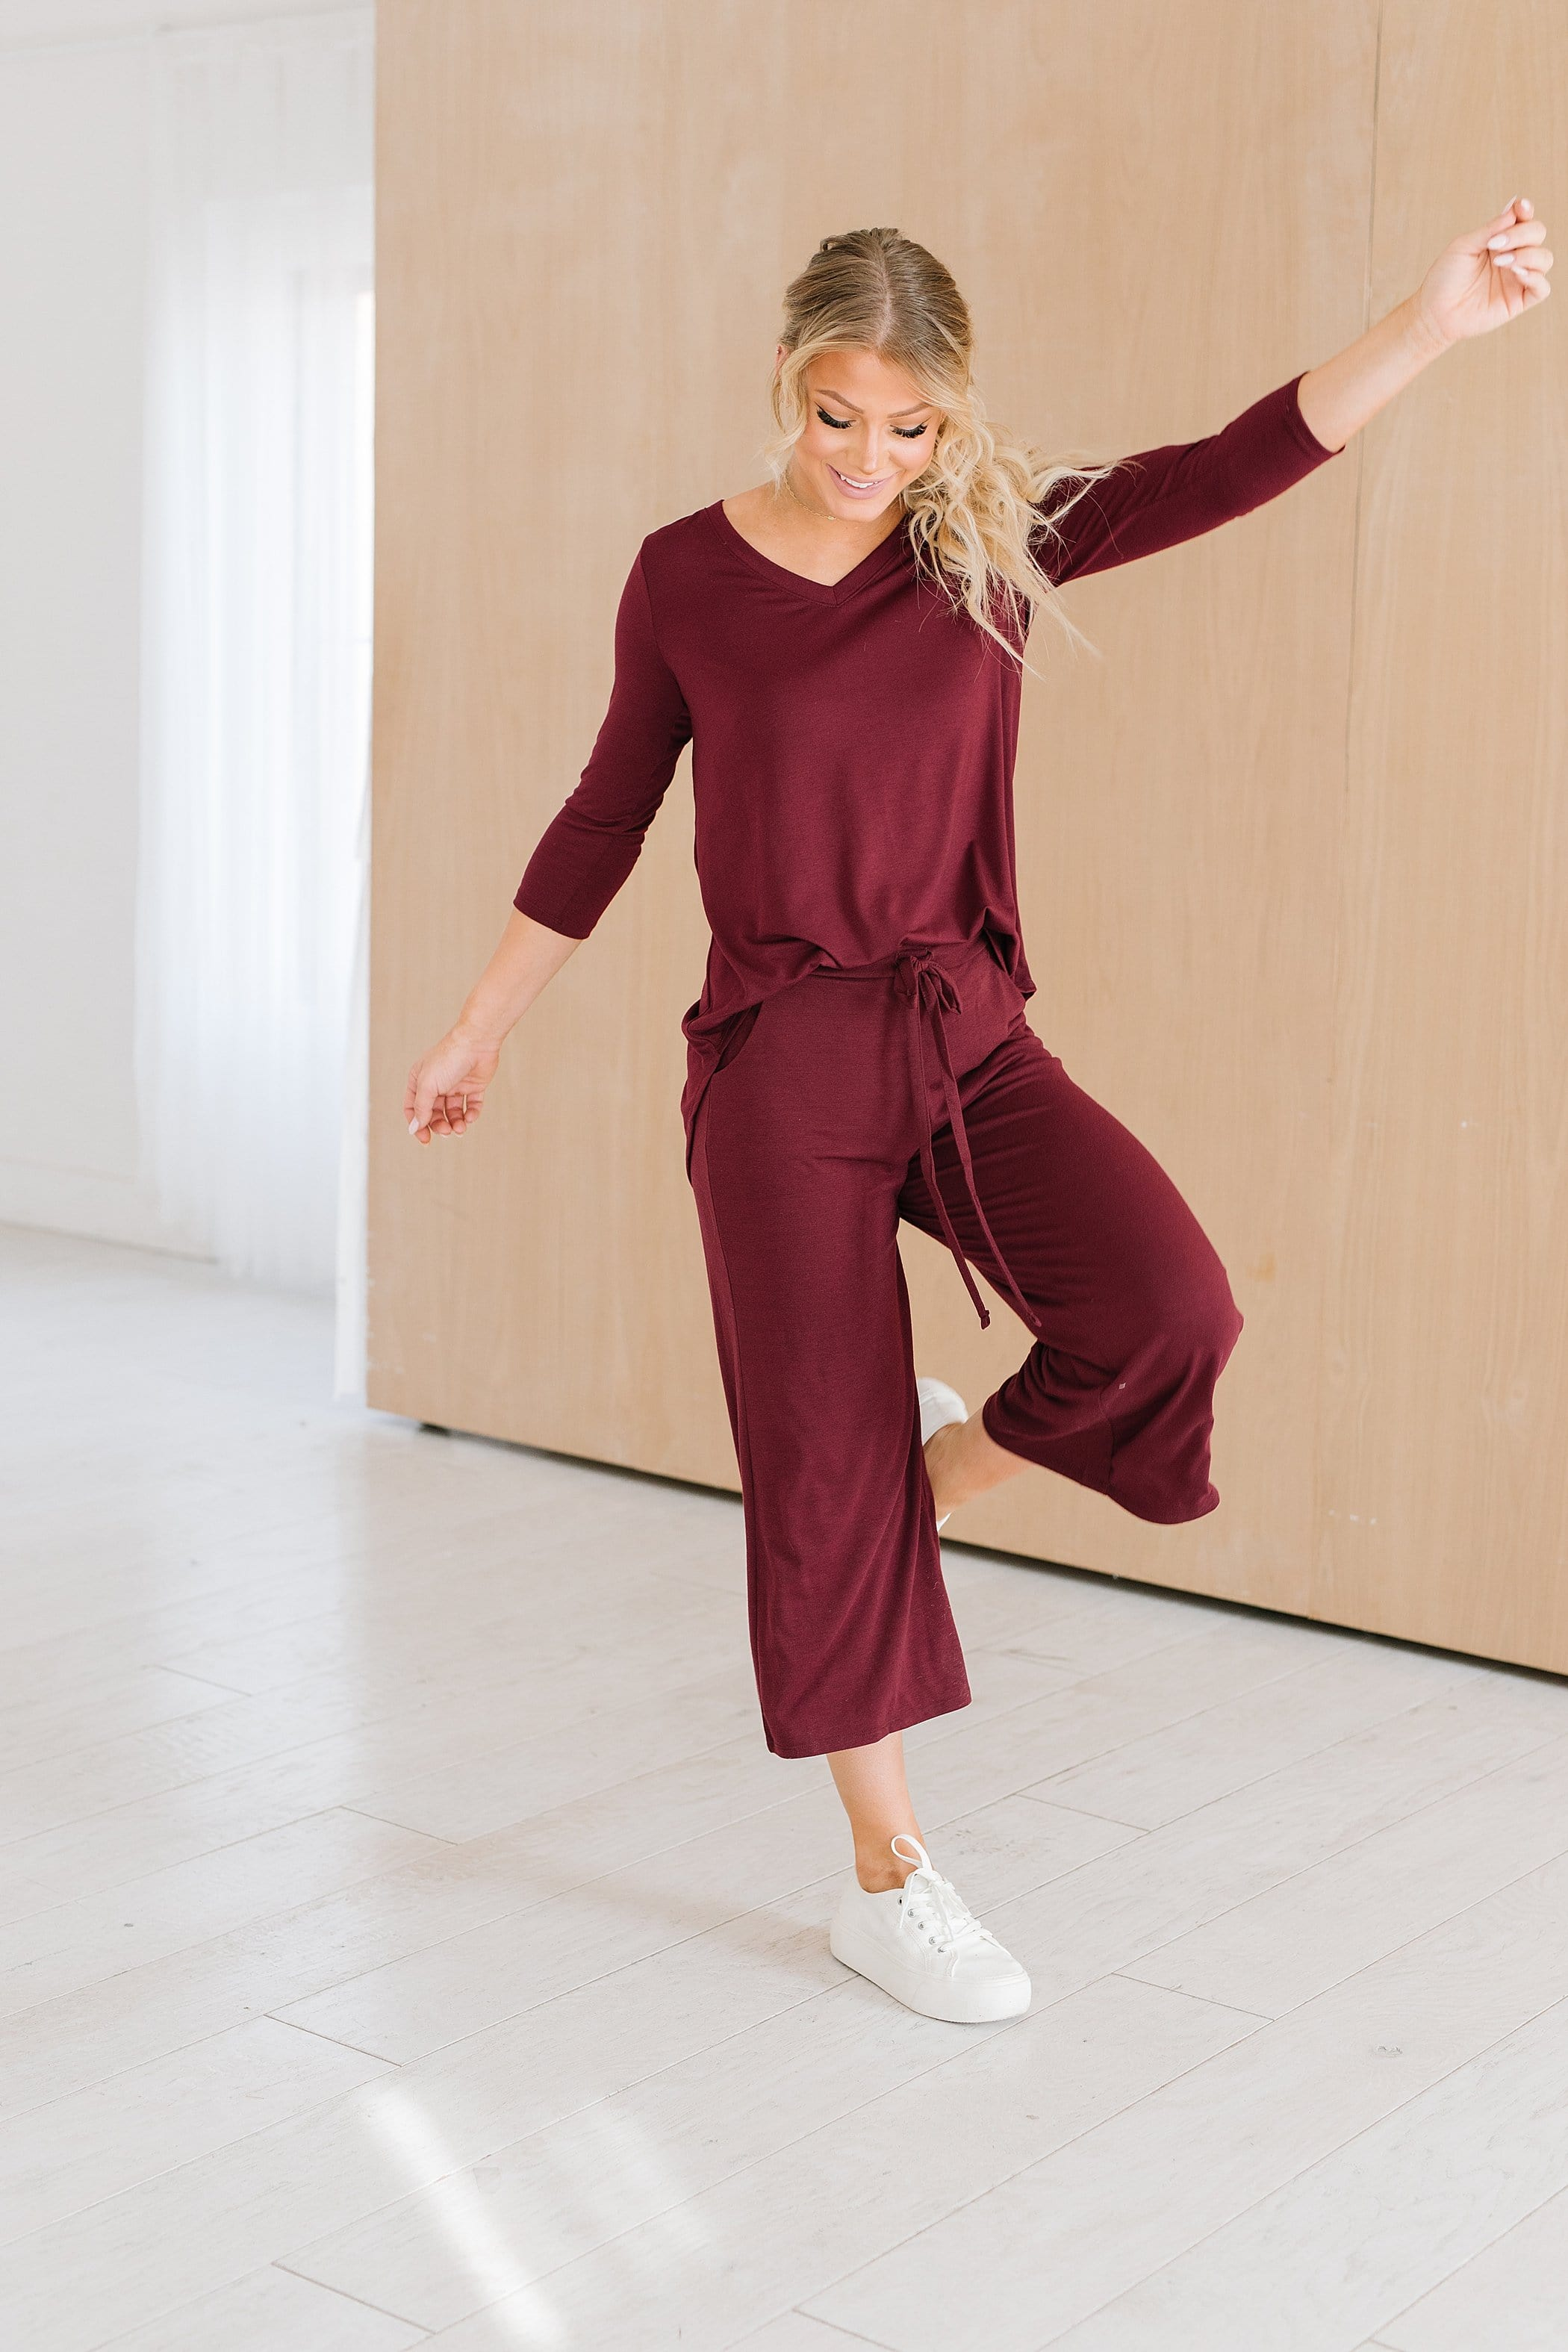 The Kaplan V Neck Lounge Set in Burgundy